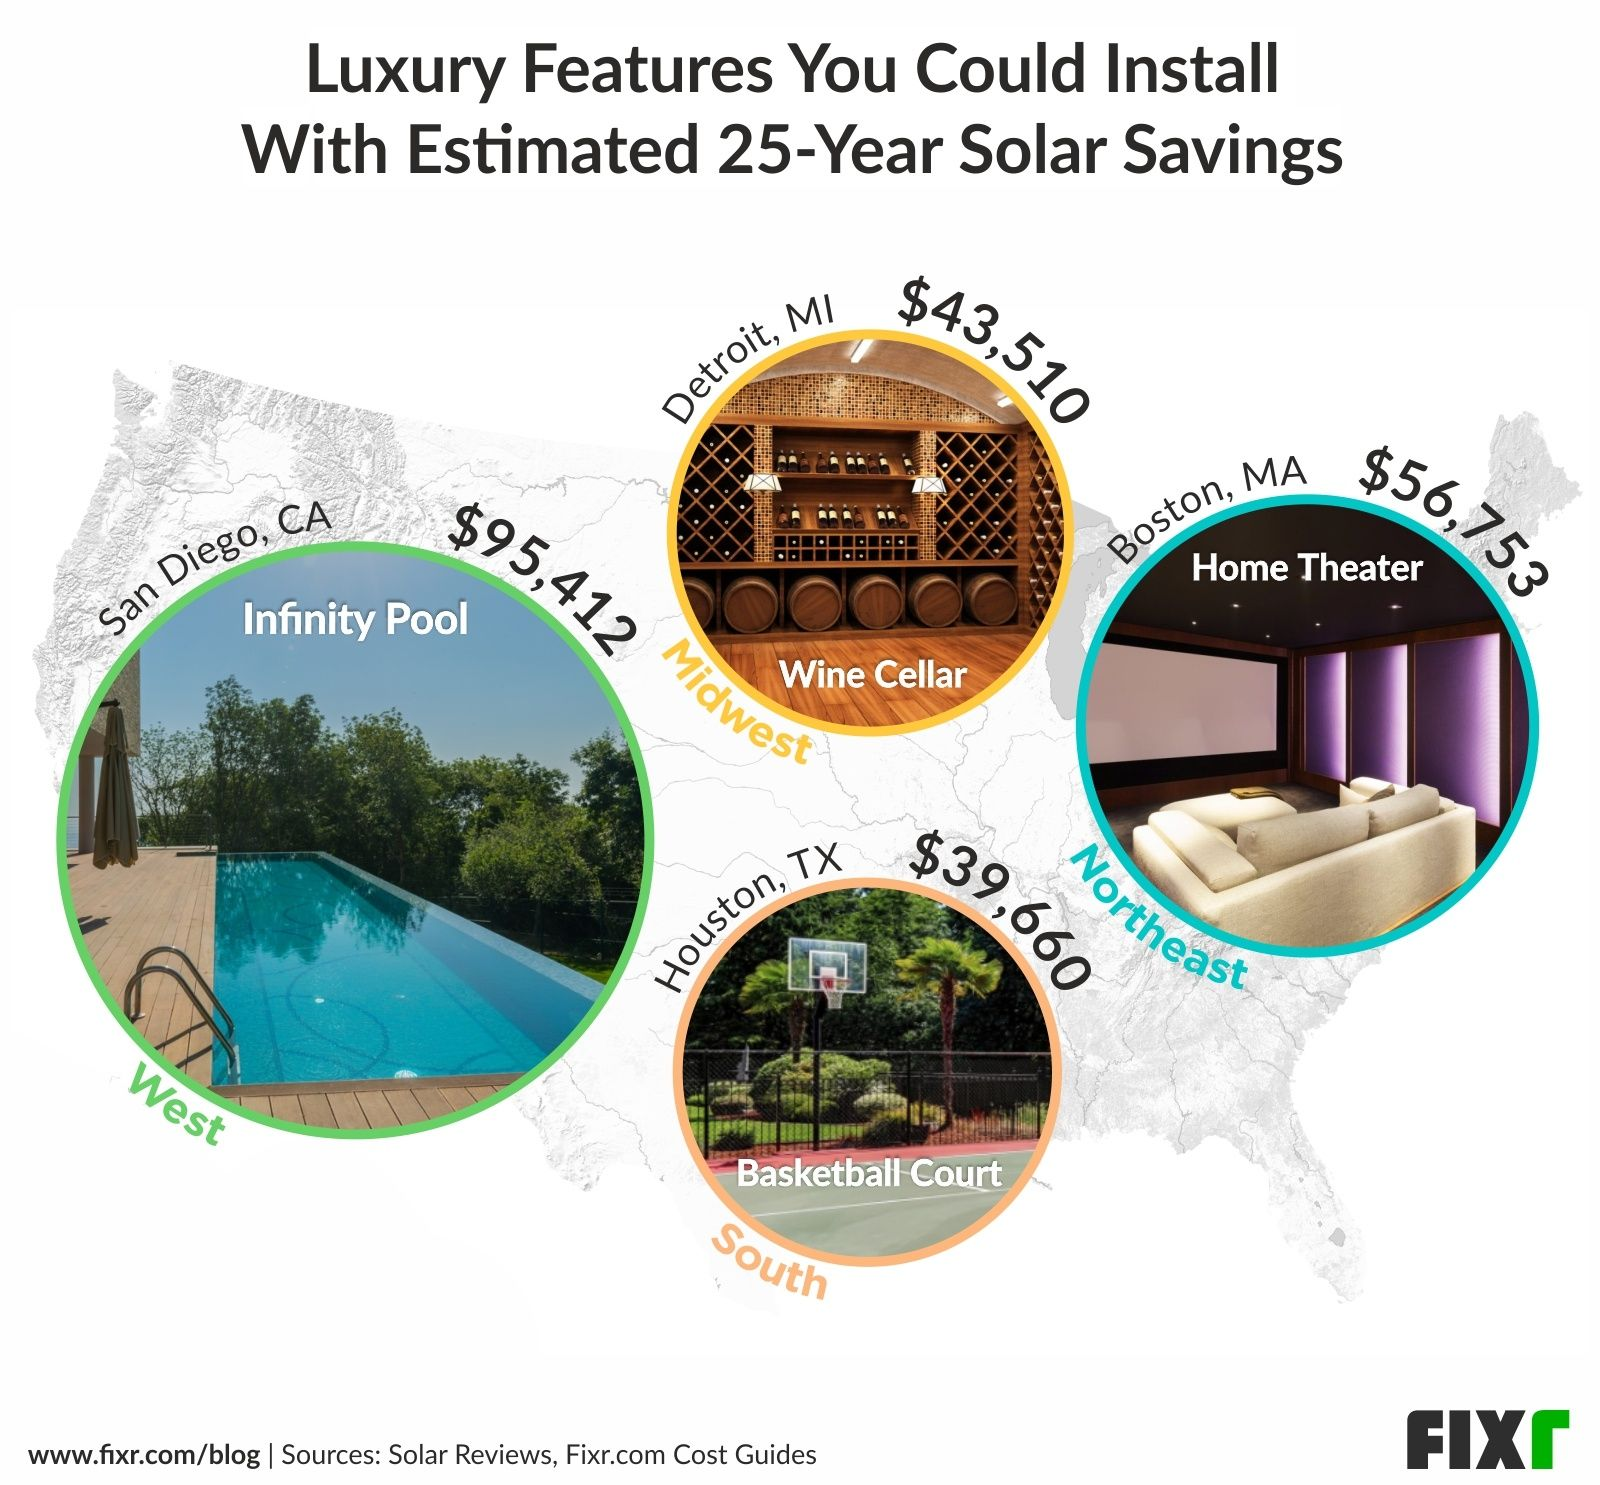 Top solar cities in each region, and the luxury features you could afford with each estimated savings from solar